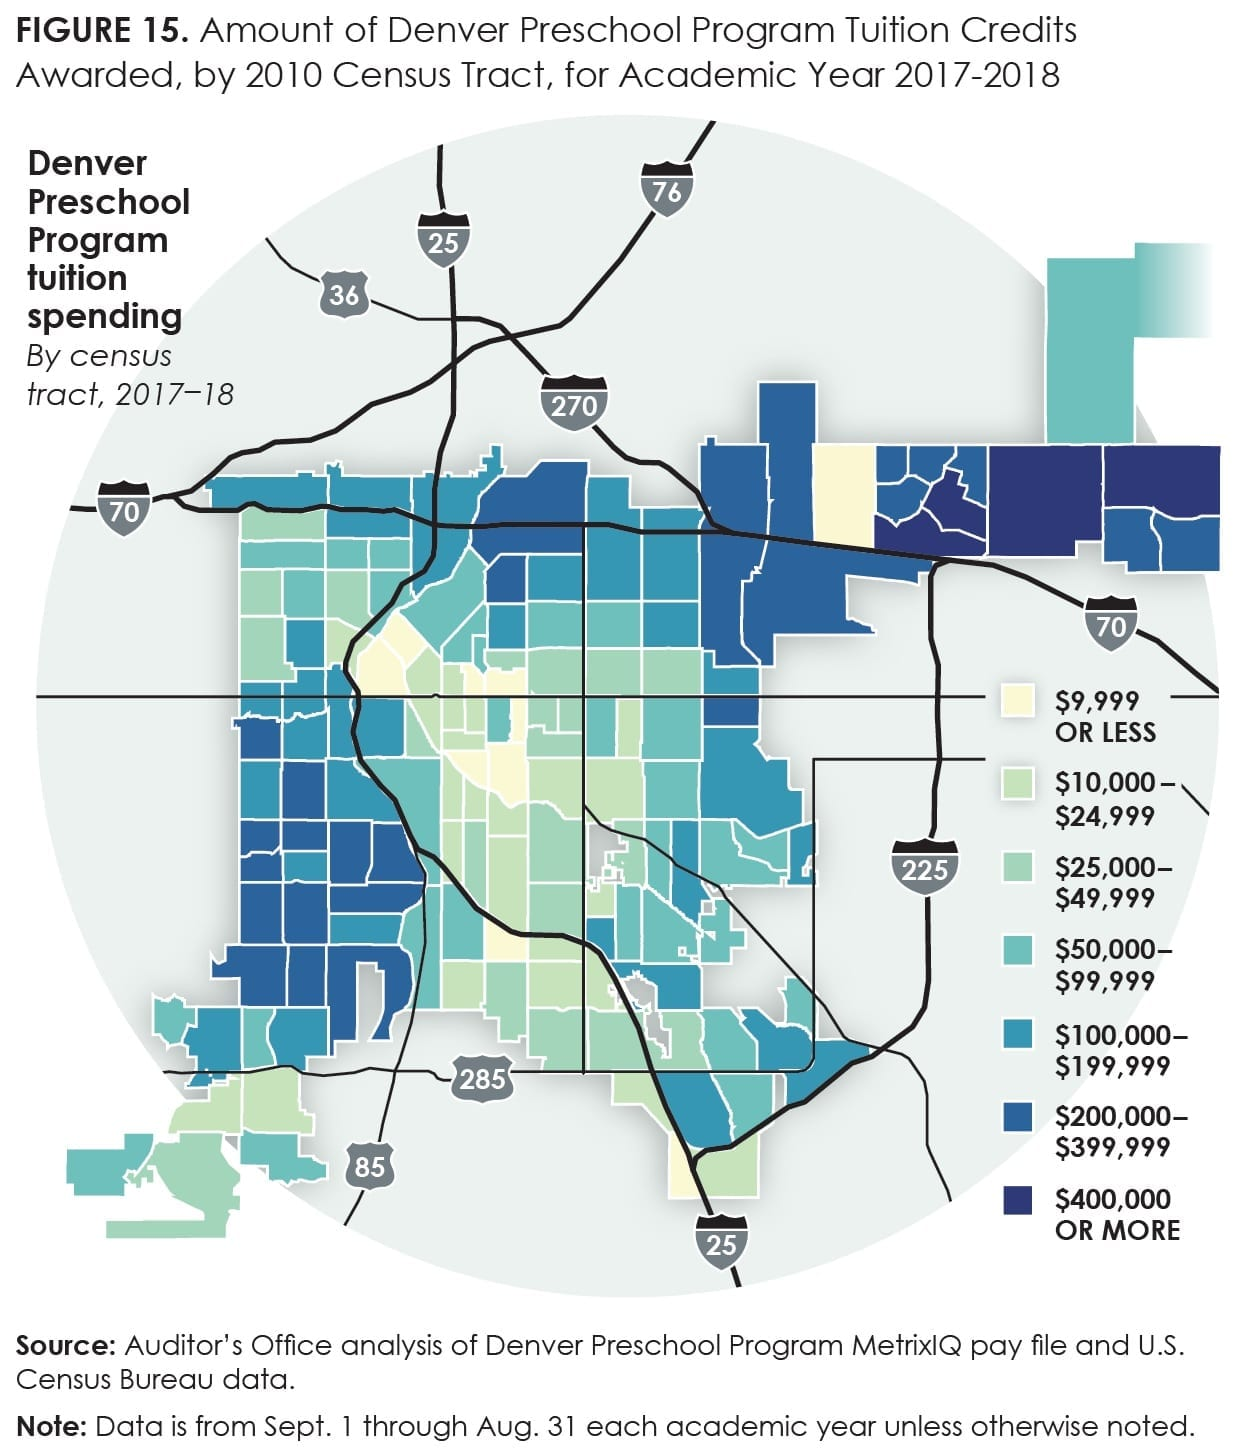 Figure15_Amount of Denver Preschool Program Tuition Credits Awarded, by 2010 Census Tract, for Academic Year 2017-18